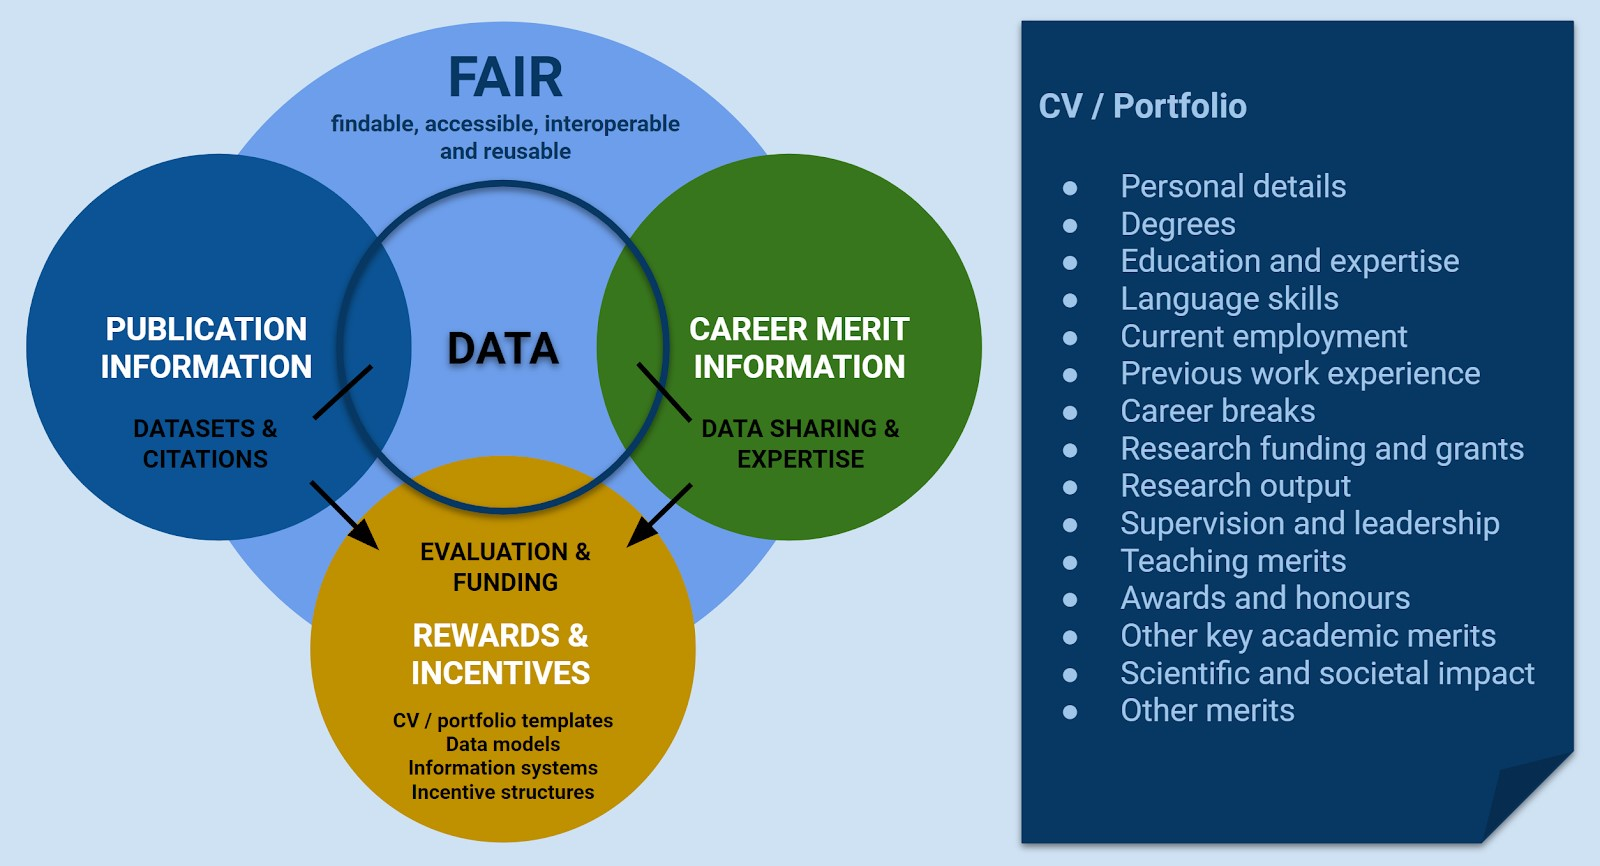 Graphic illustration of the relationships between data, publication information, incentives and rewards and career merits in relation to FAIR principles.